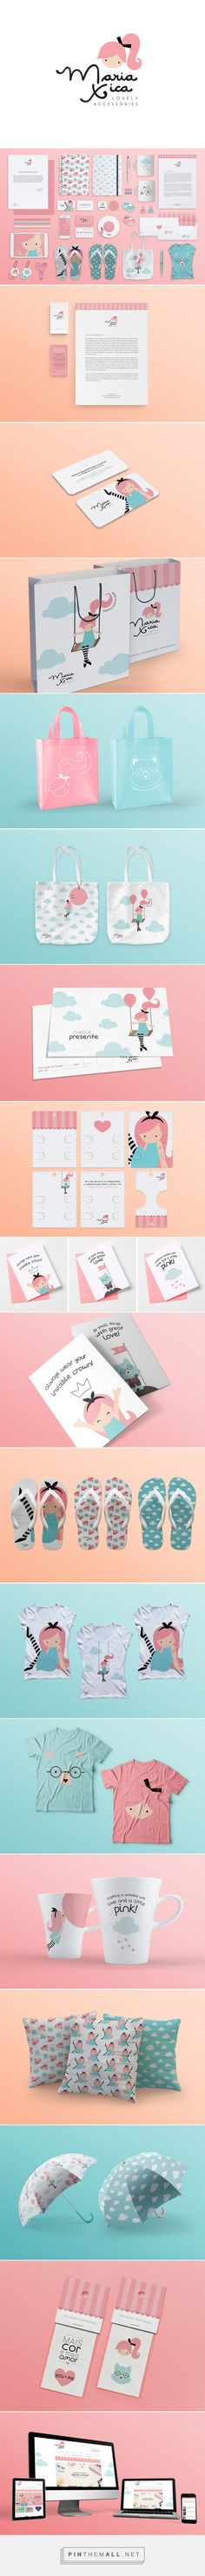 Maria-Xica-Lovely-Accessories-Branding-on-Behance | Fivestar Branding – Design…